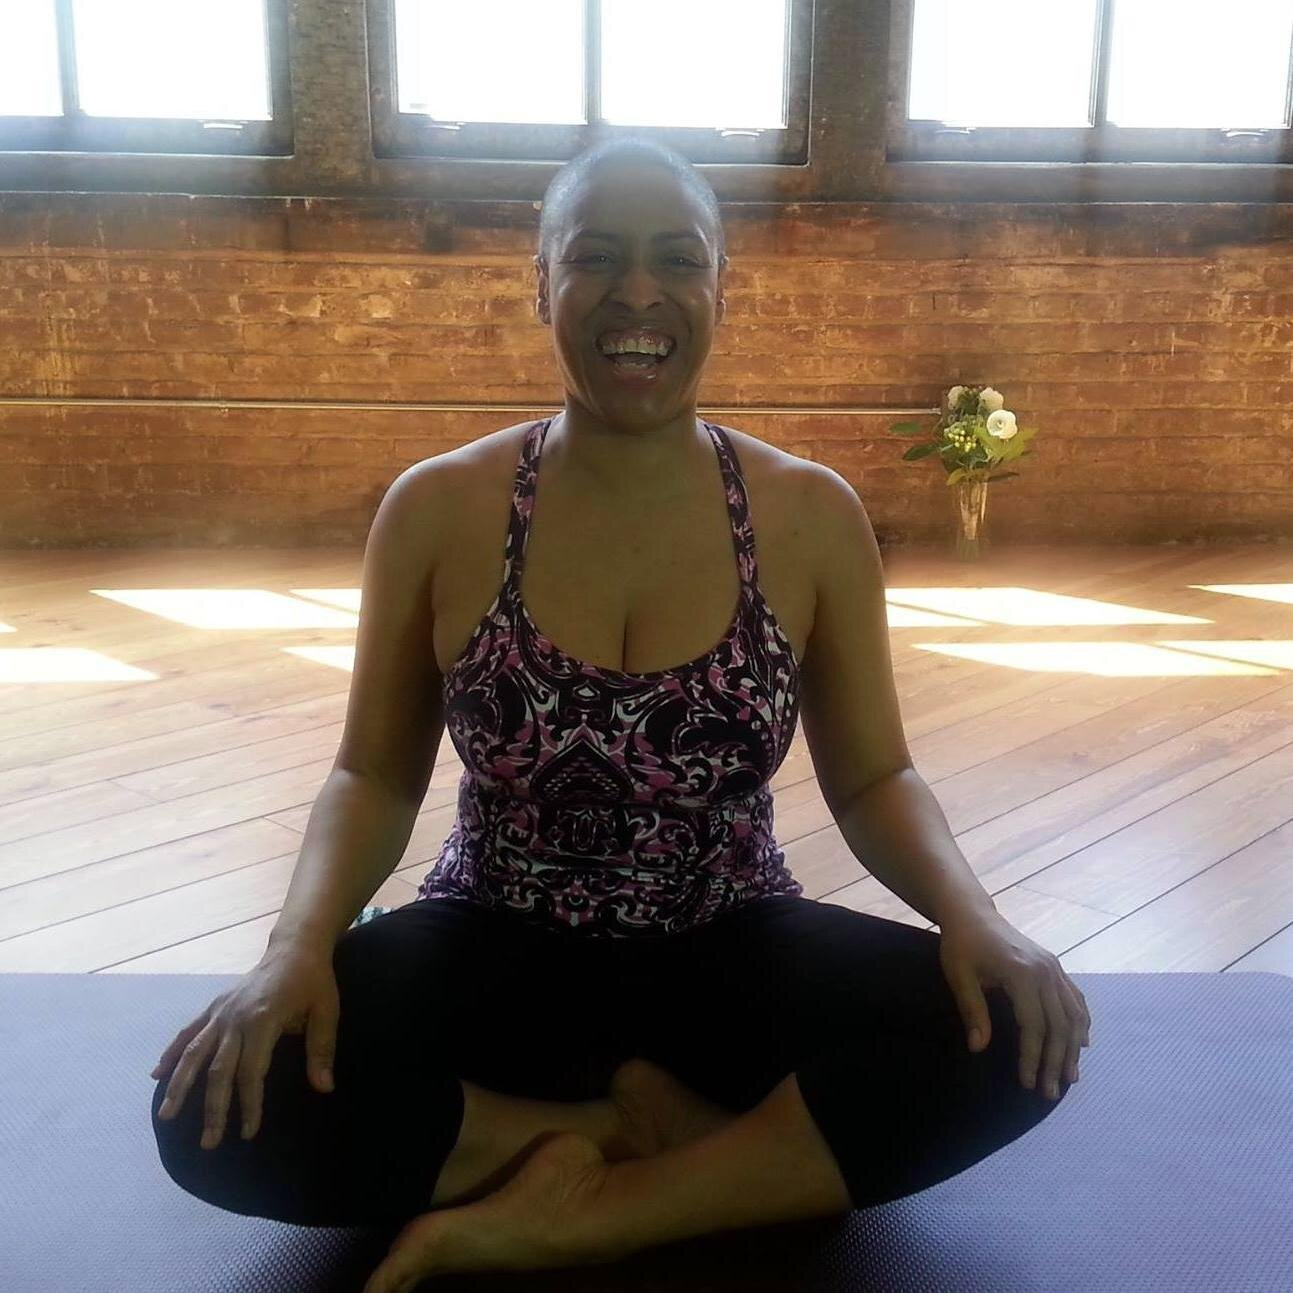 Shelley Nicole On Twitter Excited 2 Have Dvds Of My Gentle Yoga Series Vols 1 2 3 To Purchase Please Ck My Blog Yeah Https T Co Ja2lsa8f3o Gentleyoga Yoga4all